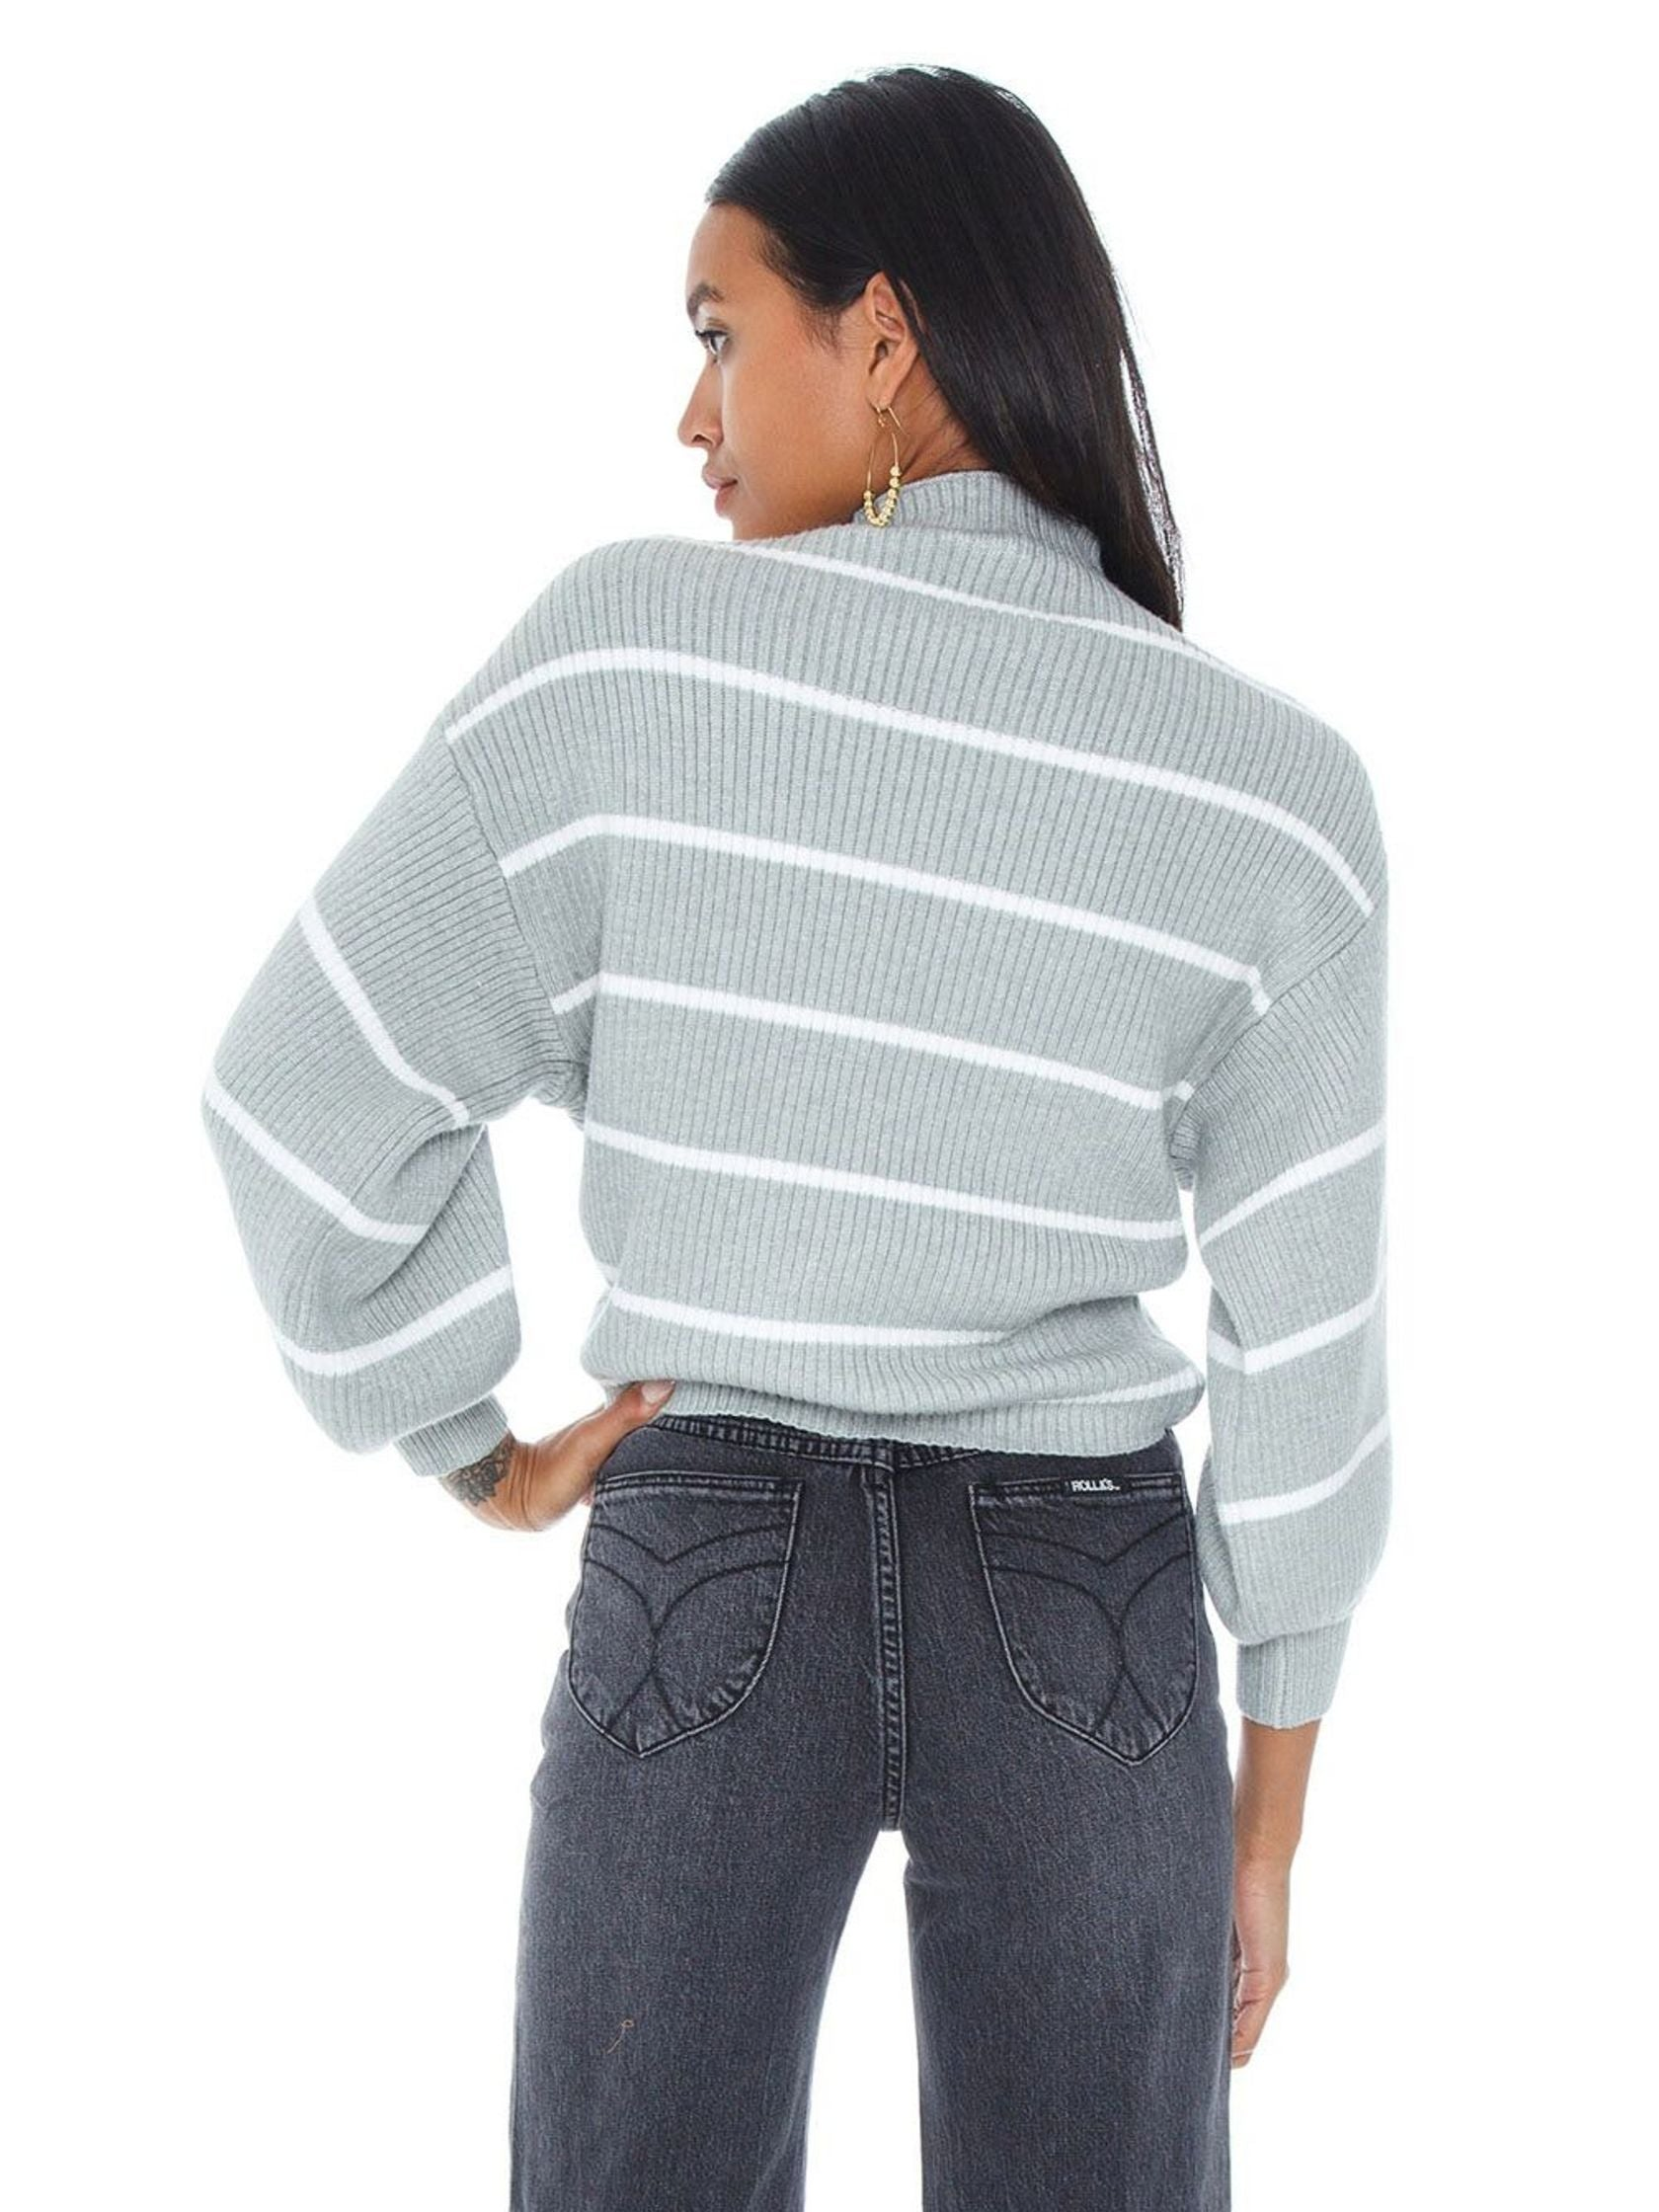 Women outfit in a sweater rental from Line & Dot called Alder Stripe Sweater